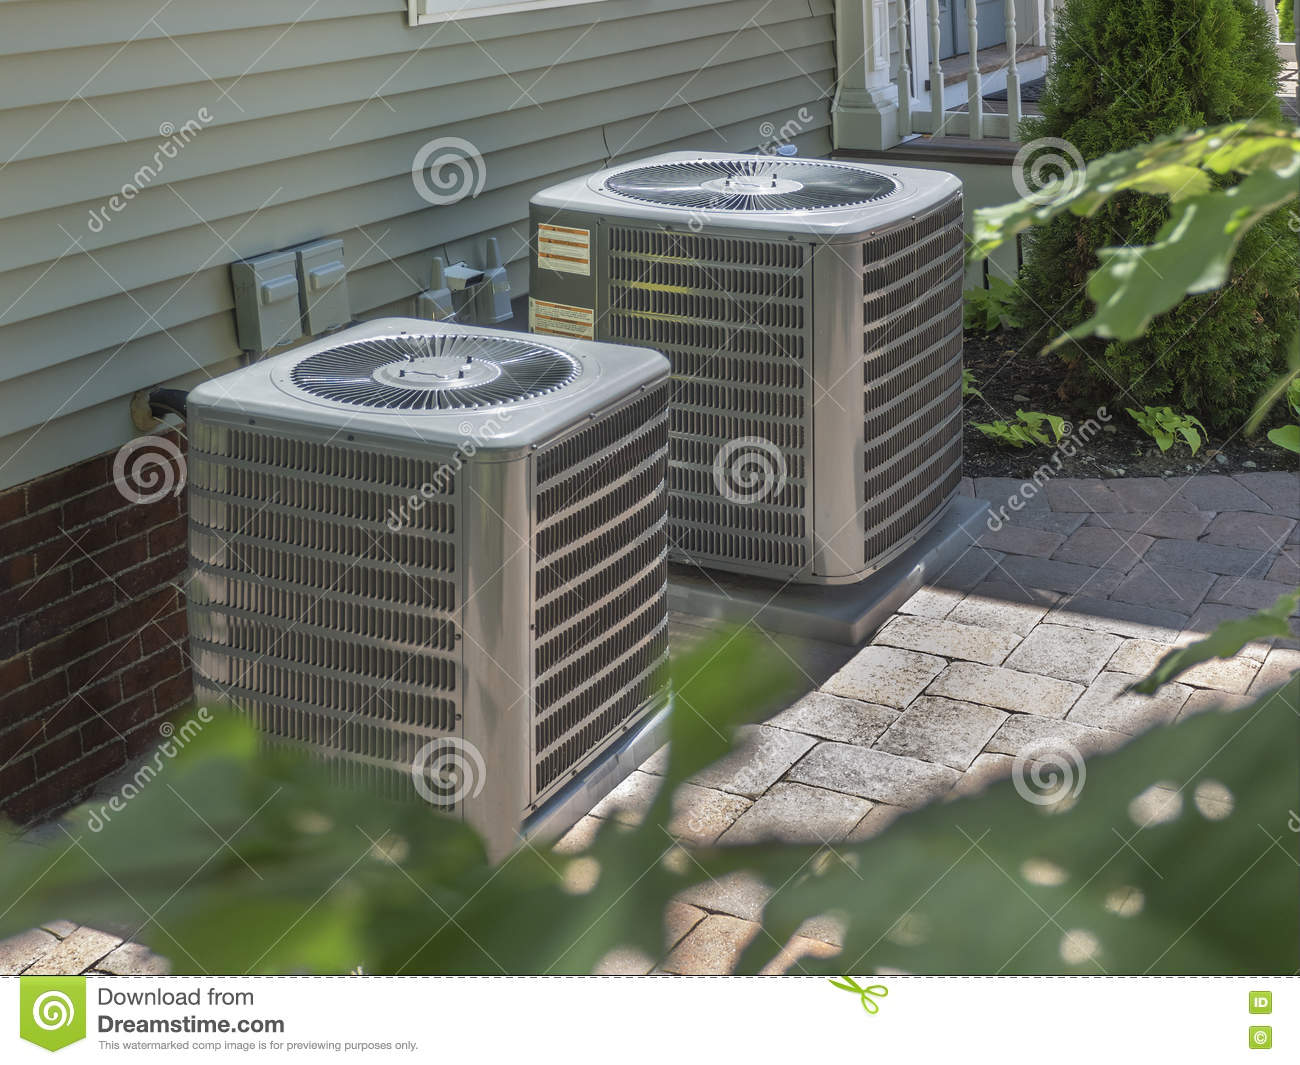 Heating and air conditioning residential HVAC units